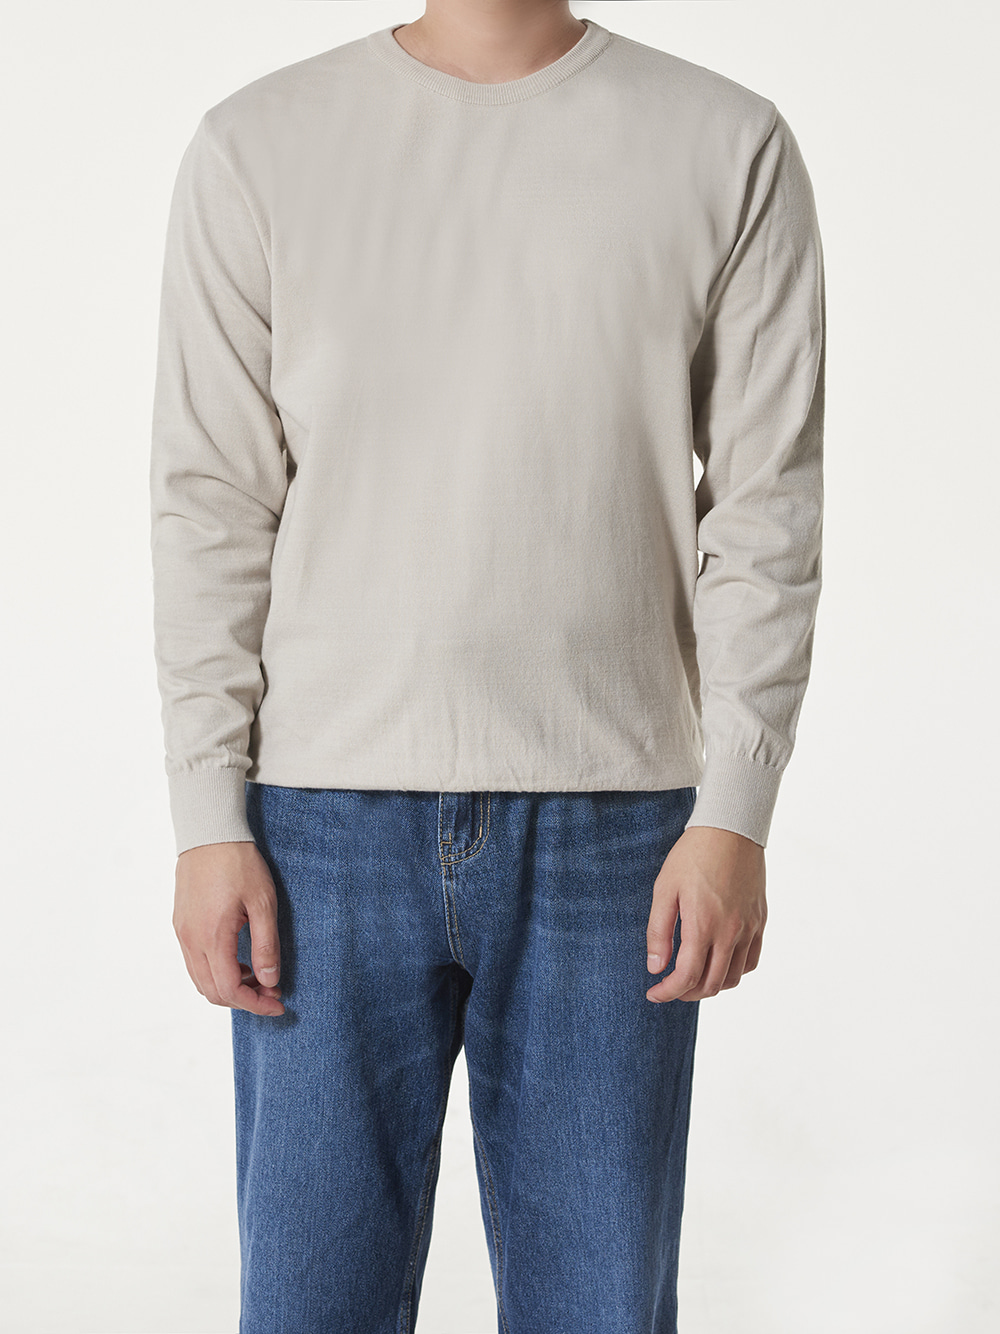 -[DEVERMAN] Soft touch solid crew neck knit (pure grey)